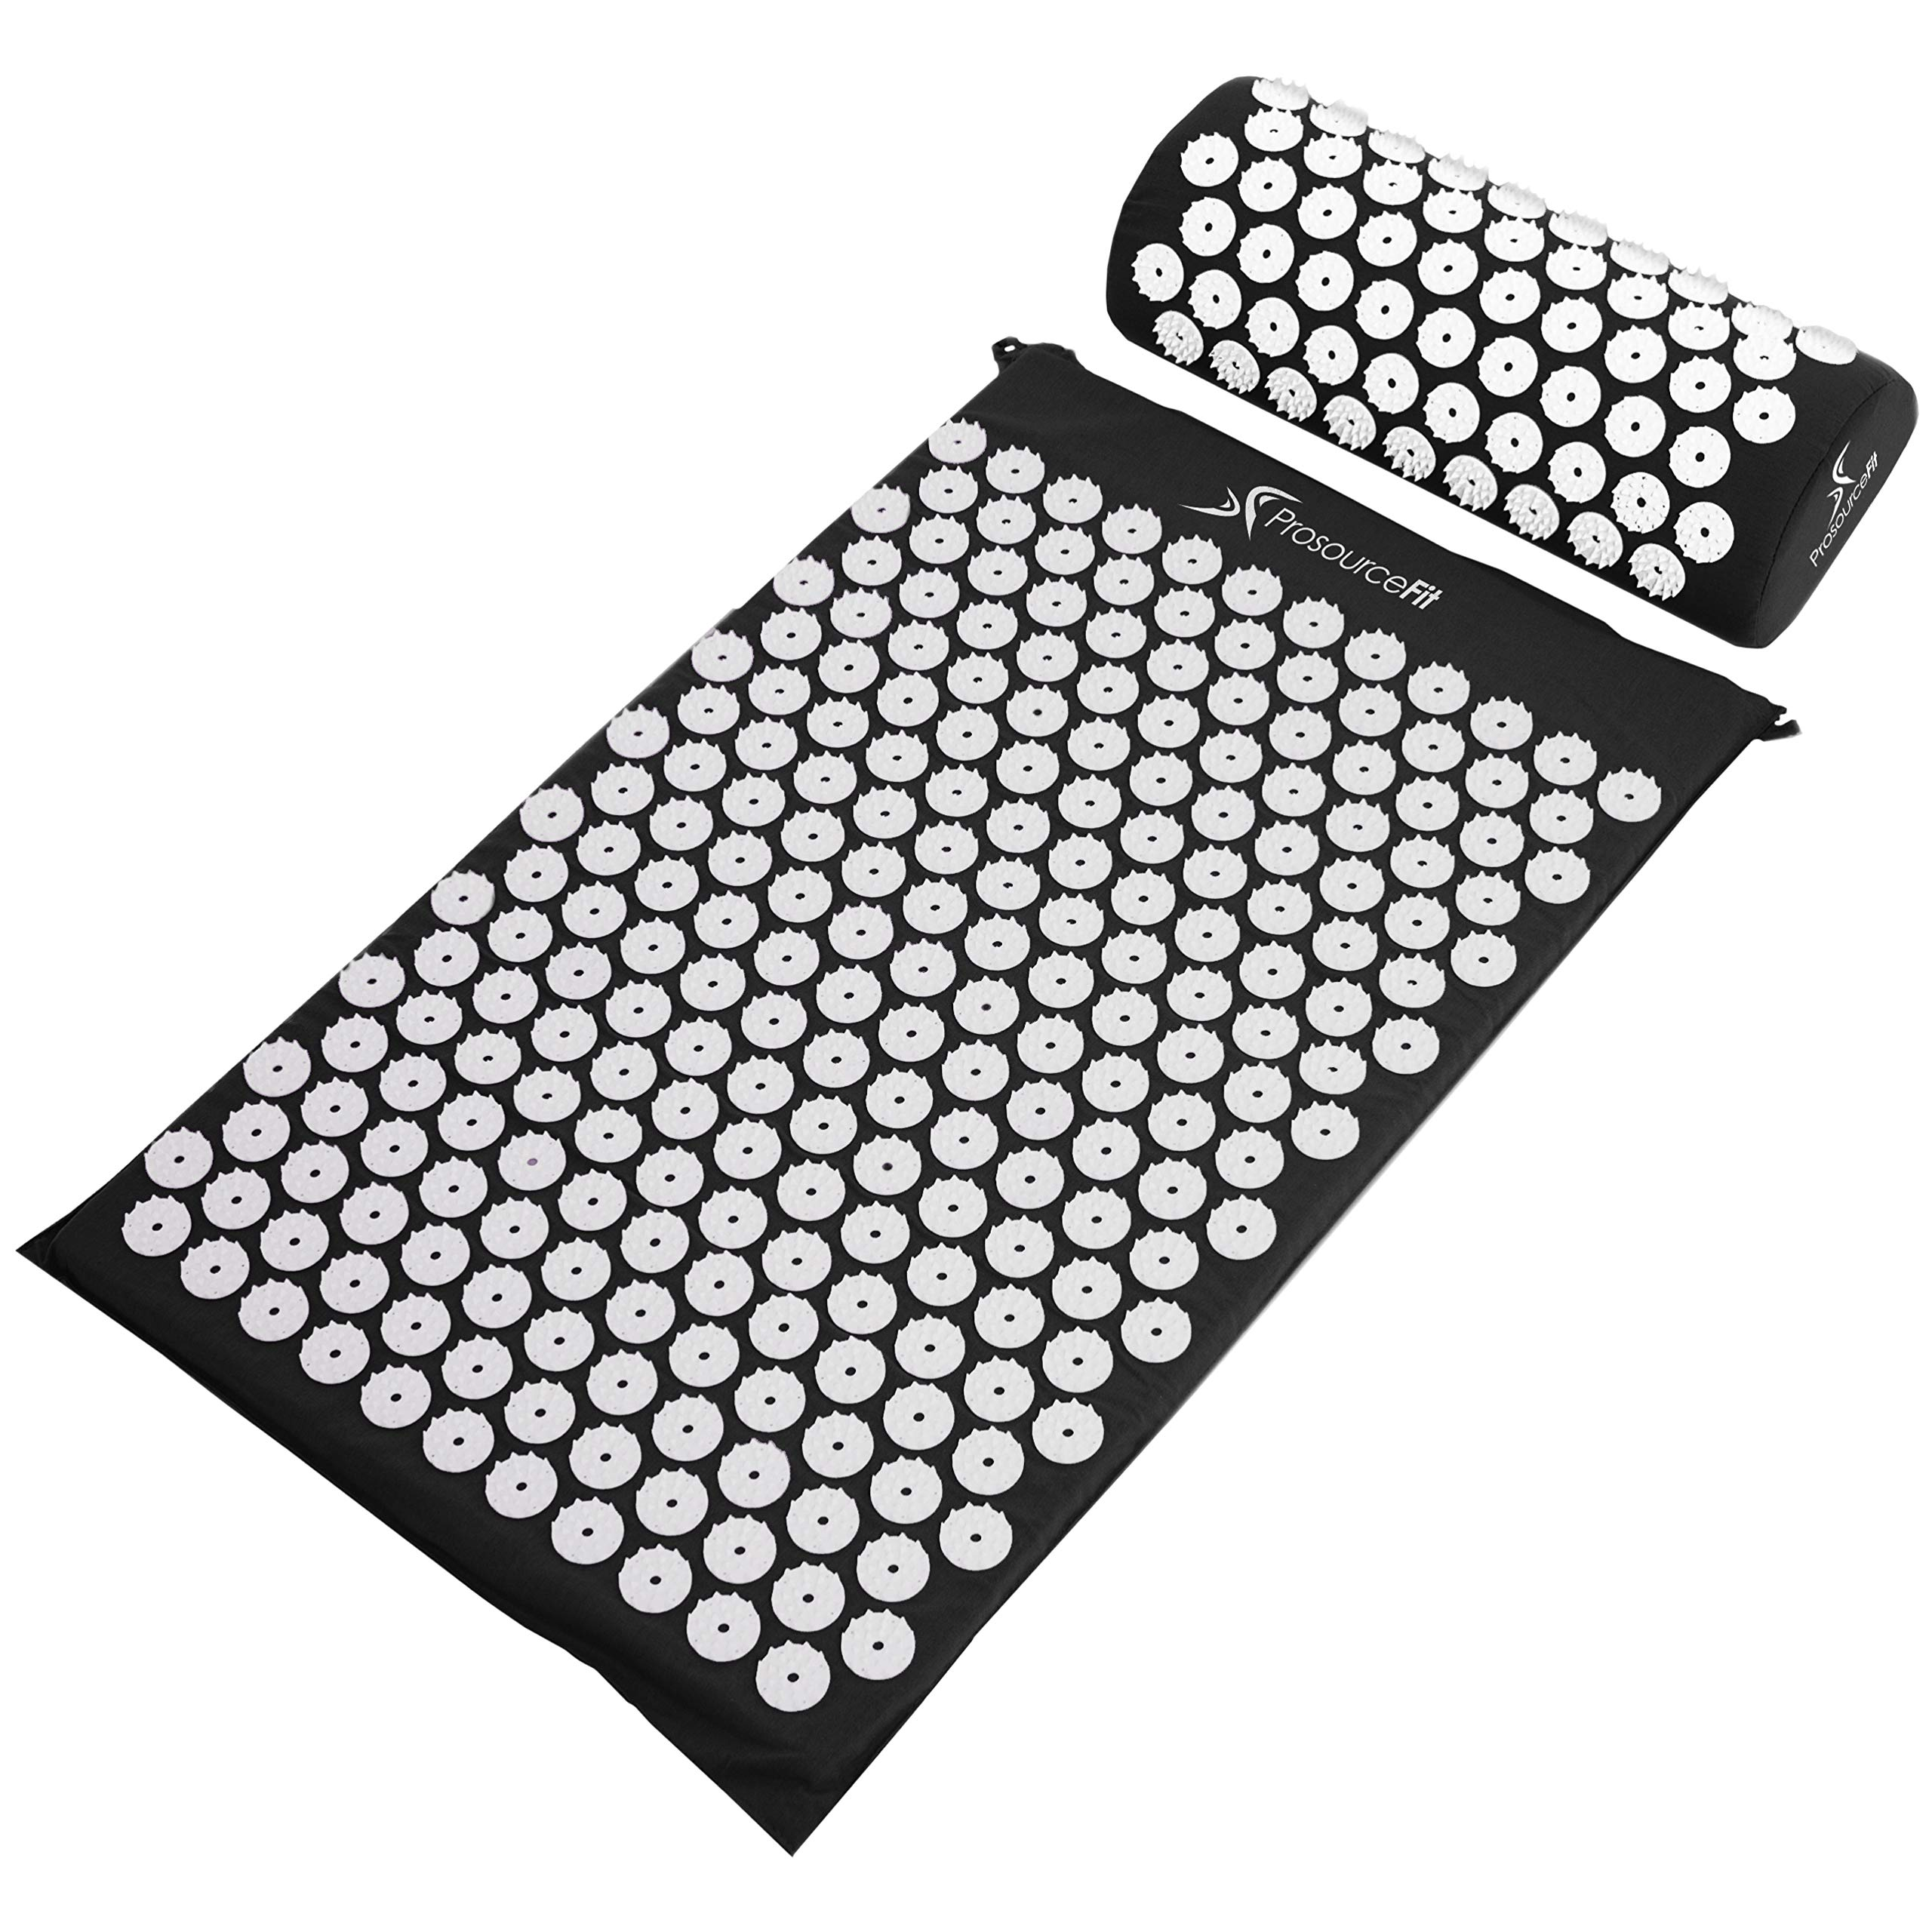 ProSource Acupressure Mat and Pillow Set for Back/Neck Pain Relief and Muscle Relaxation, Black by ProSource